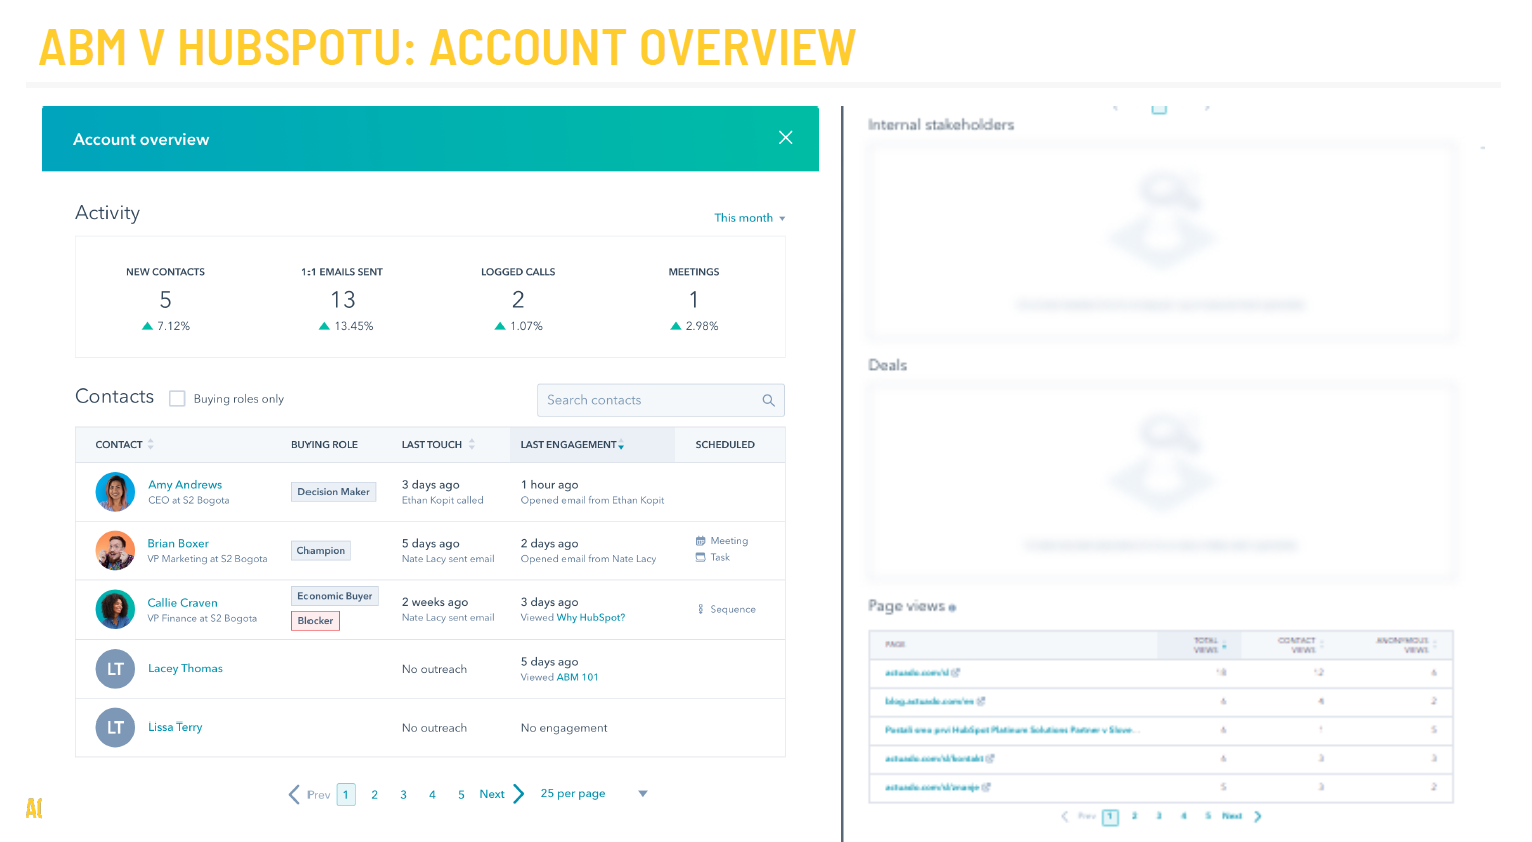 ABM v HubSpotu: account overview